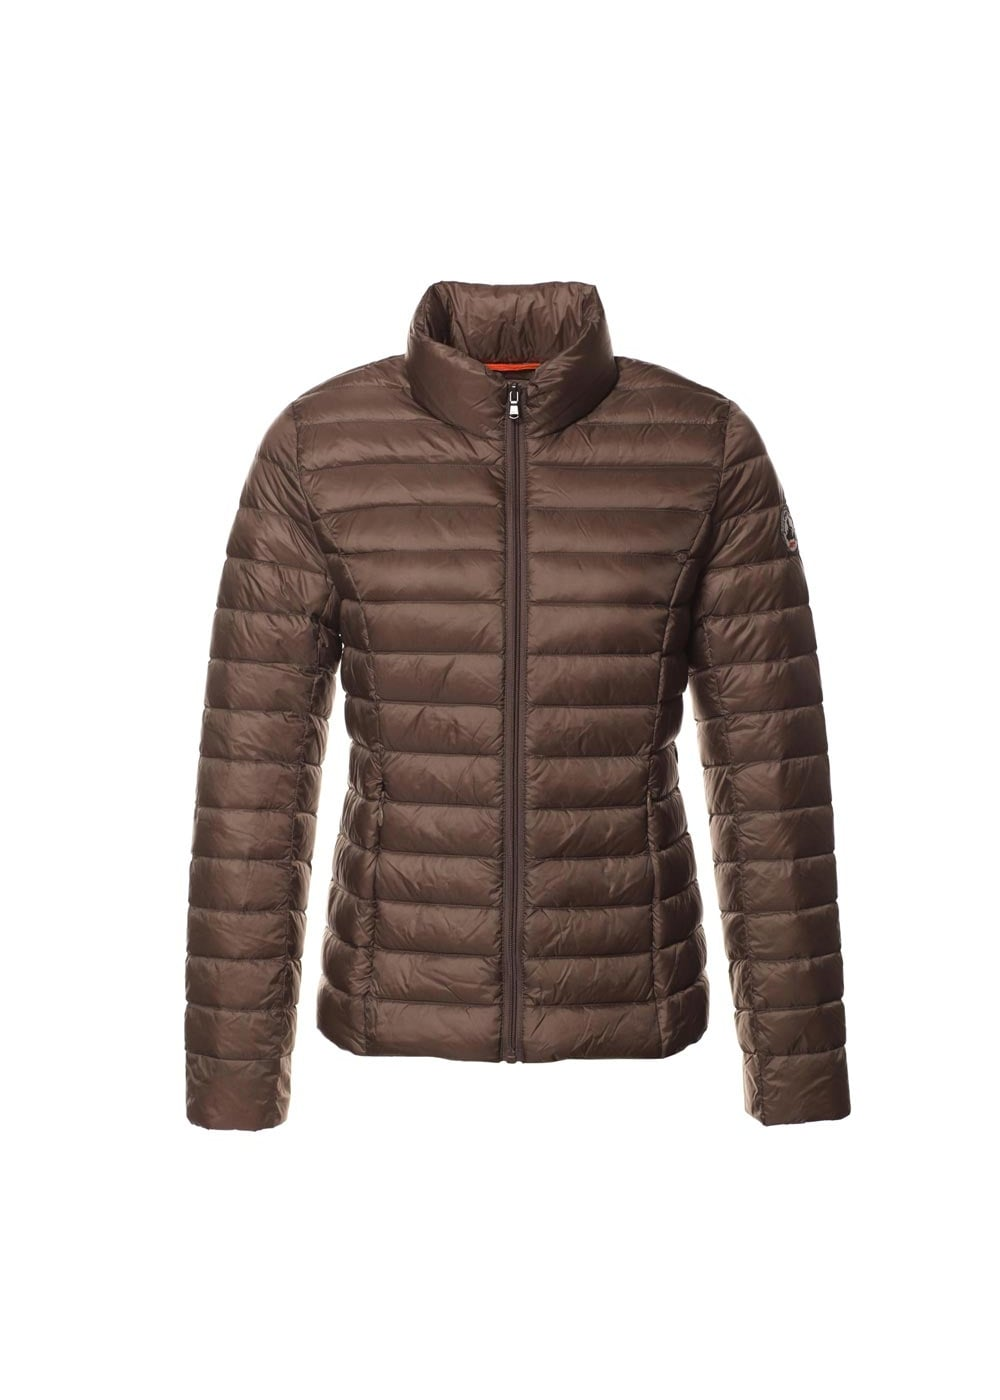 JOTT Cha Down Jacket - Ladies from A Hume UK